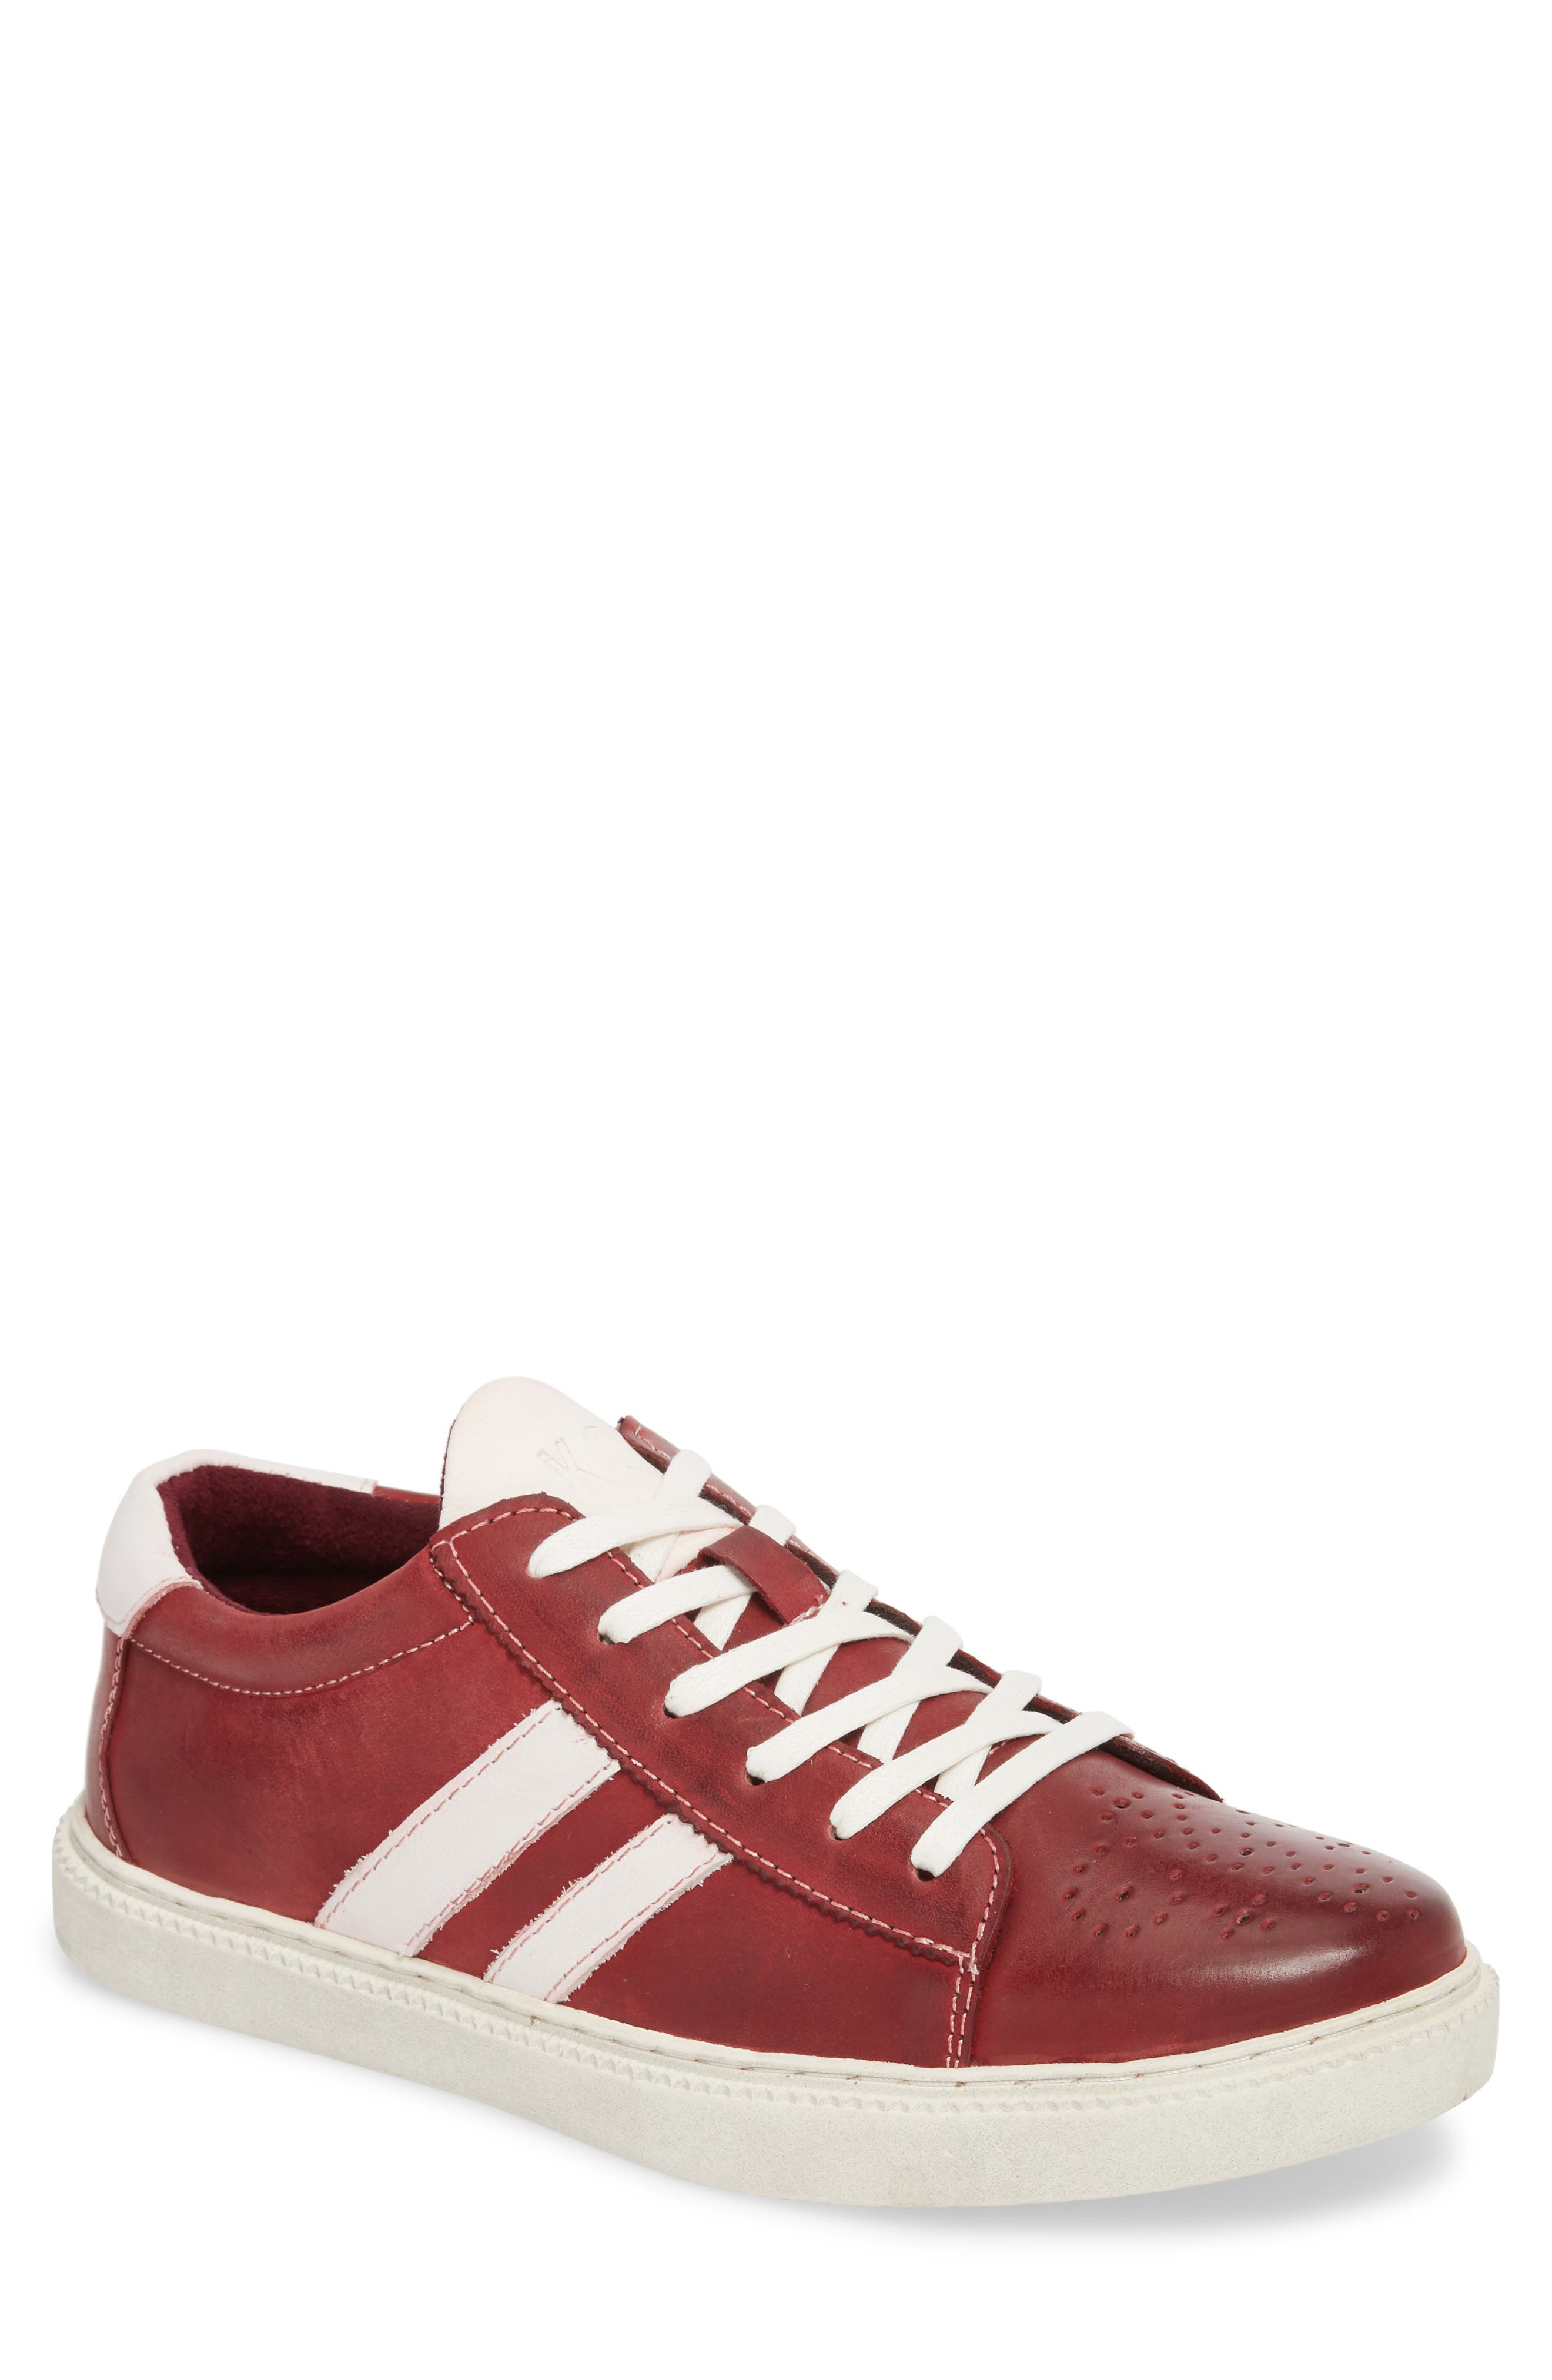 Madox Low Top Sneaker,                         Main,                         color, Red